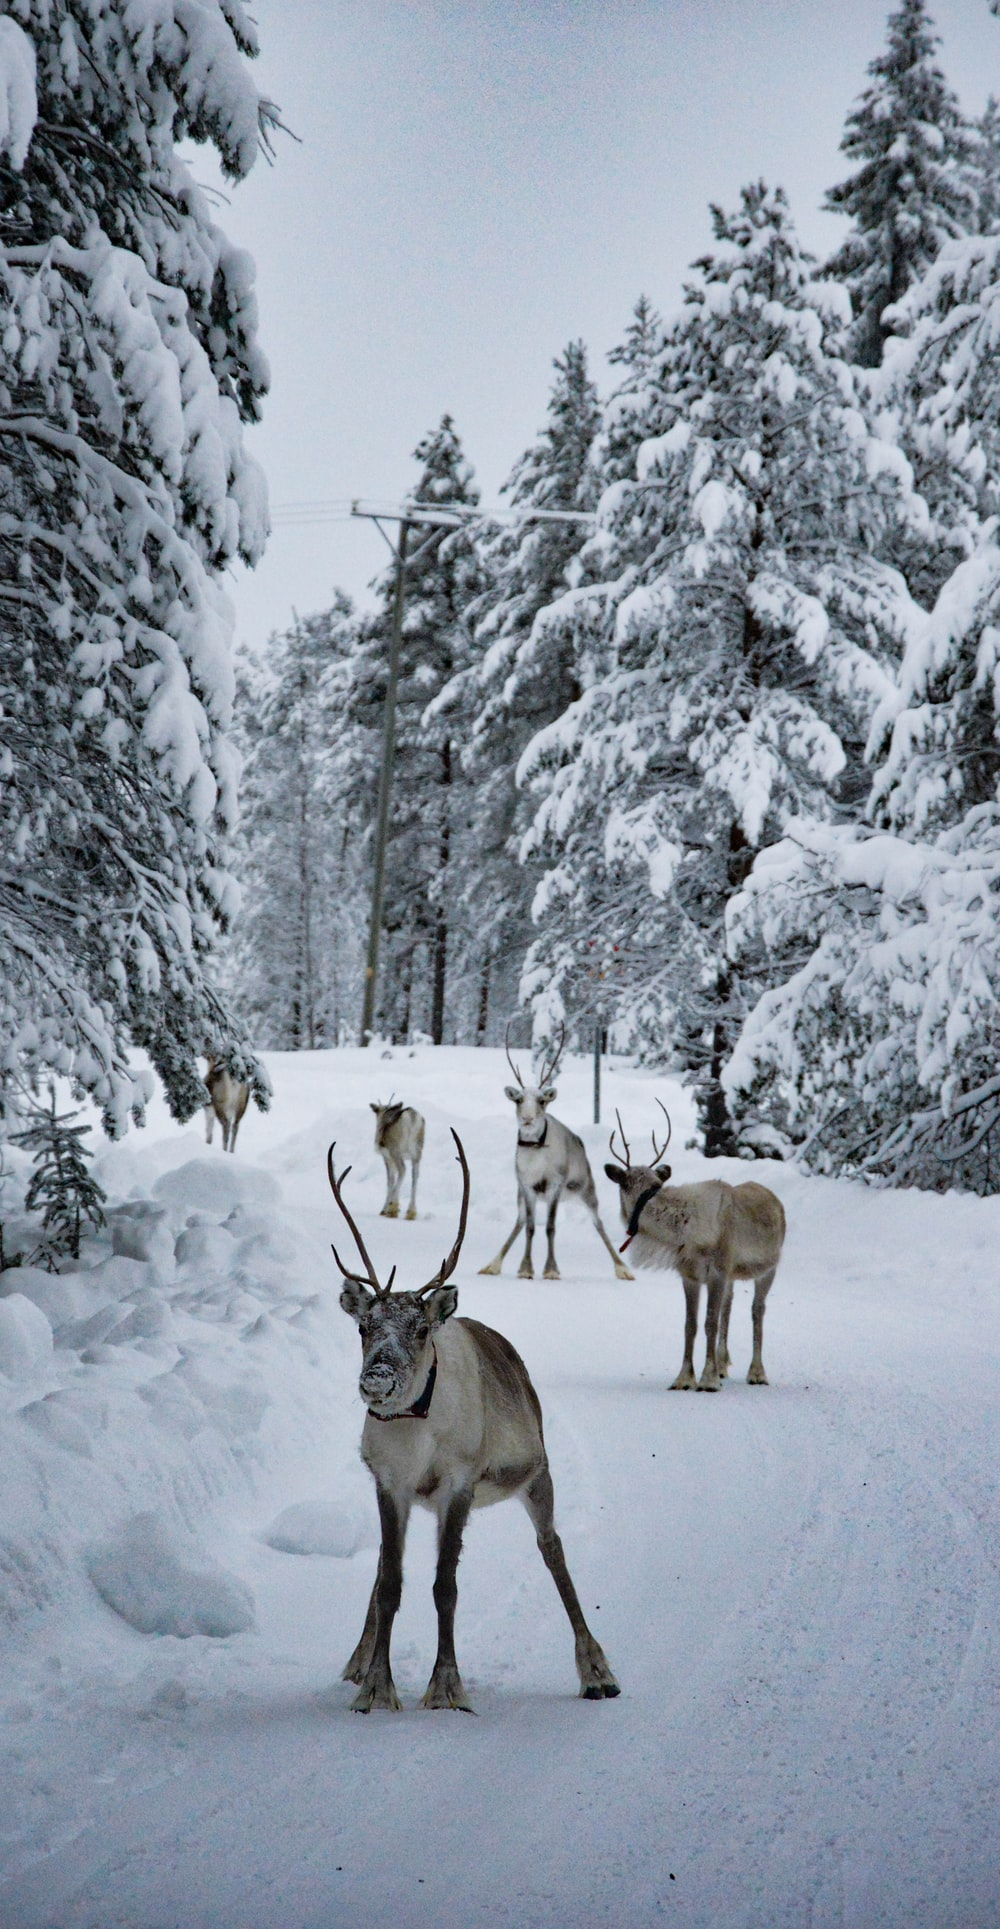 group of deer at snowfield